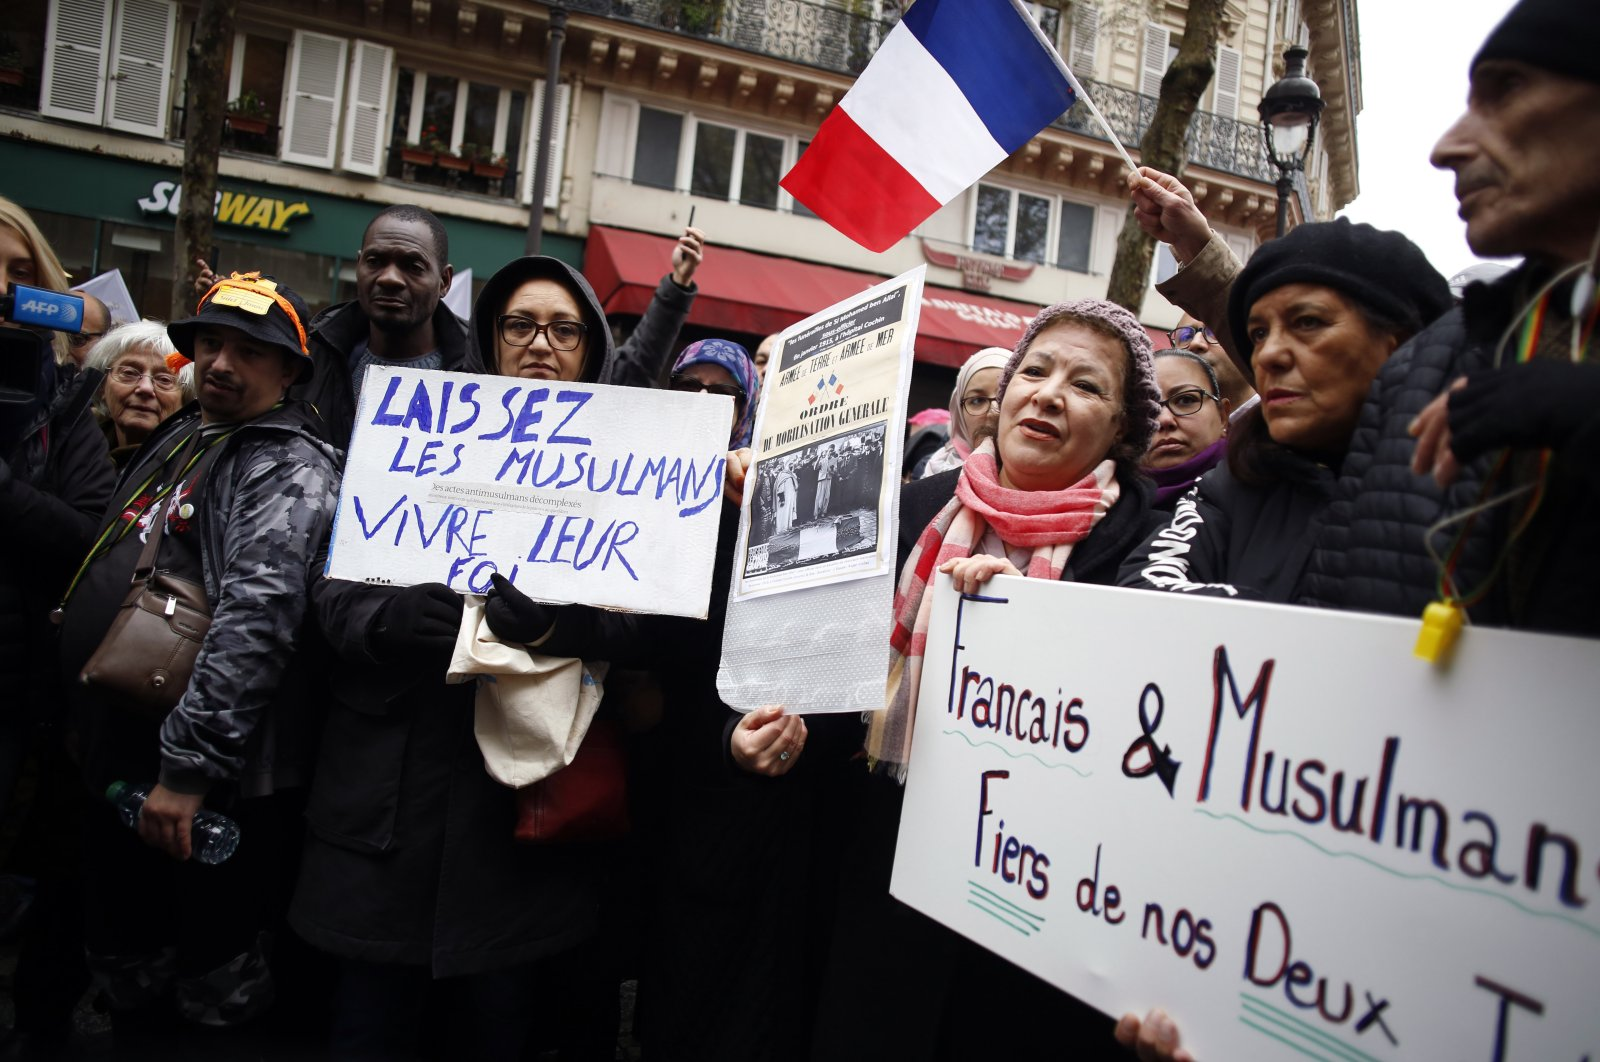 Protestors hold placards during a demonstration against Islamophobia, in Paris, France, Nov. 10, 2019. (AP File Photo)